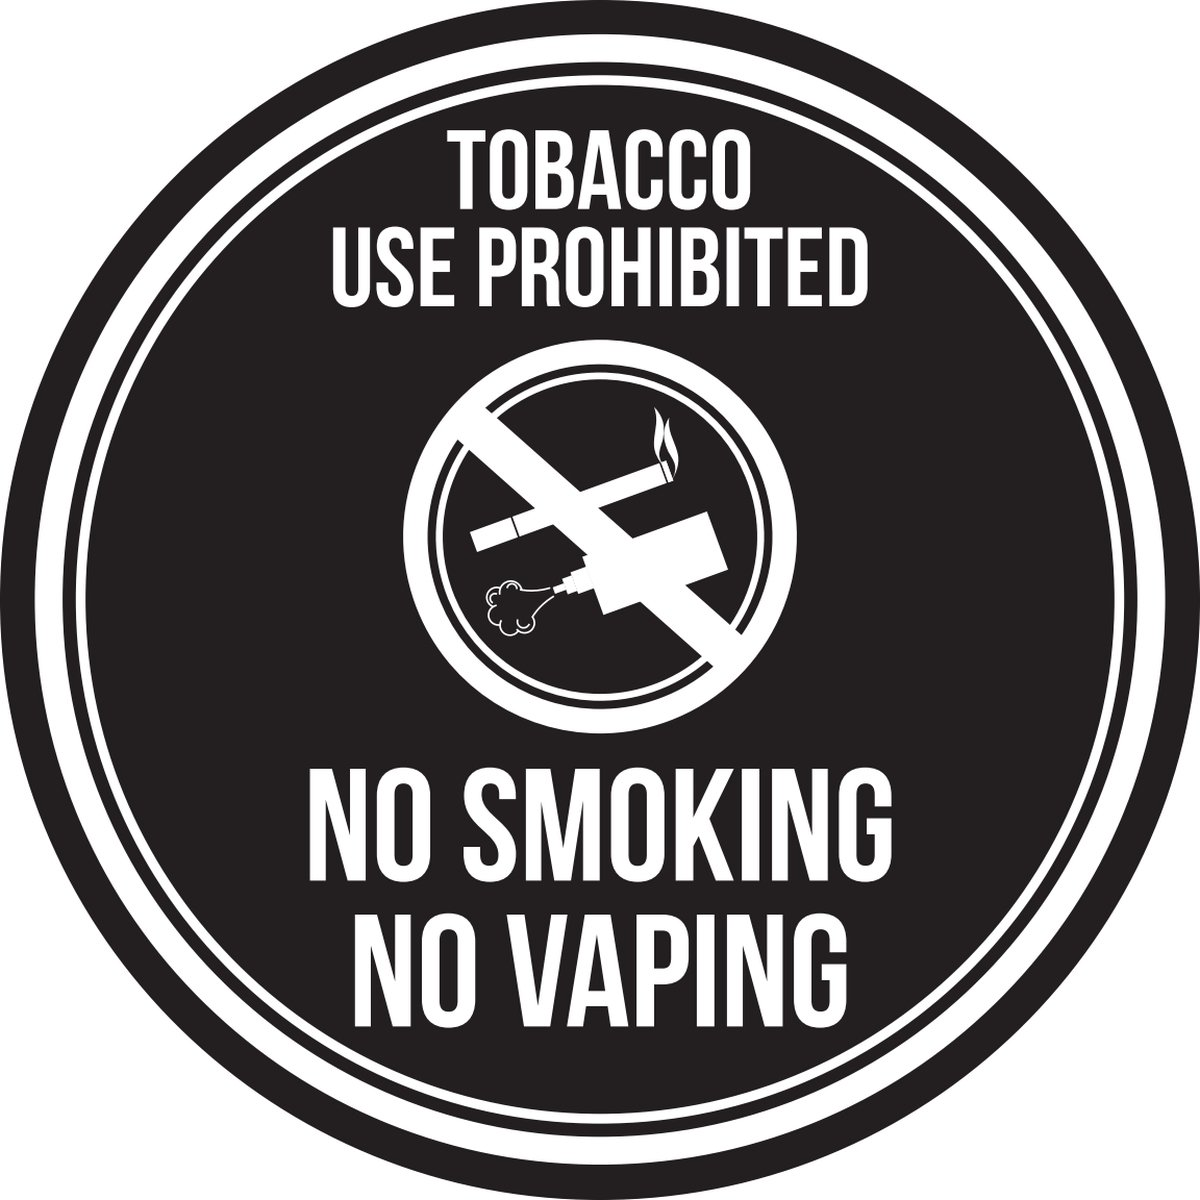 iCandy Products Inc Tobacco Use Prohibited No Smoking No Vaping Black & White Business Commercial Safety Warning Round Sign - 12 Inch, Metal